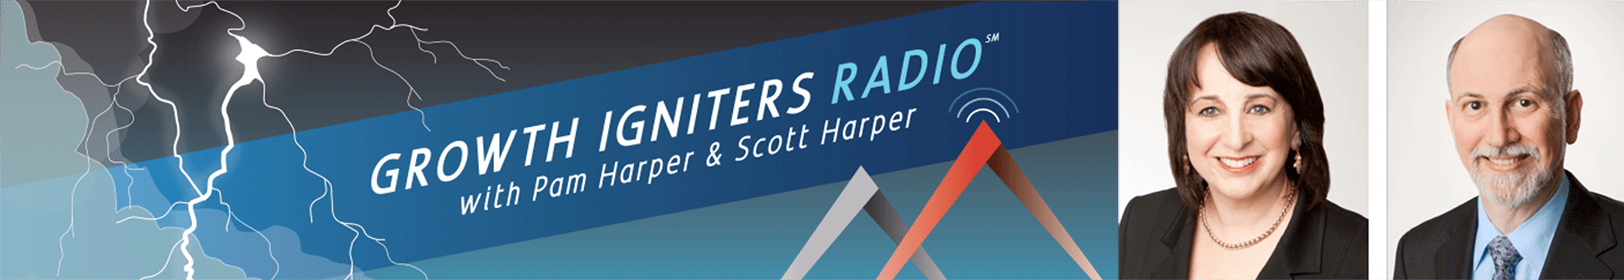 growth igniters radio